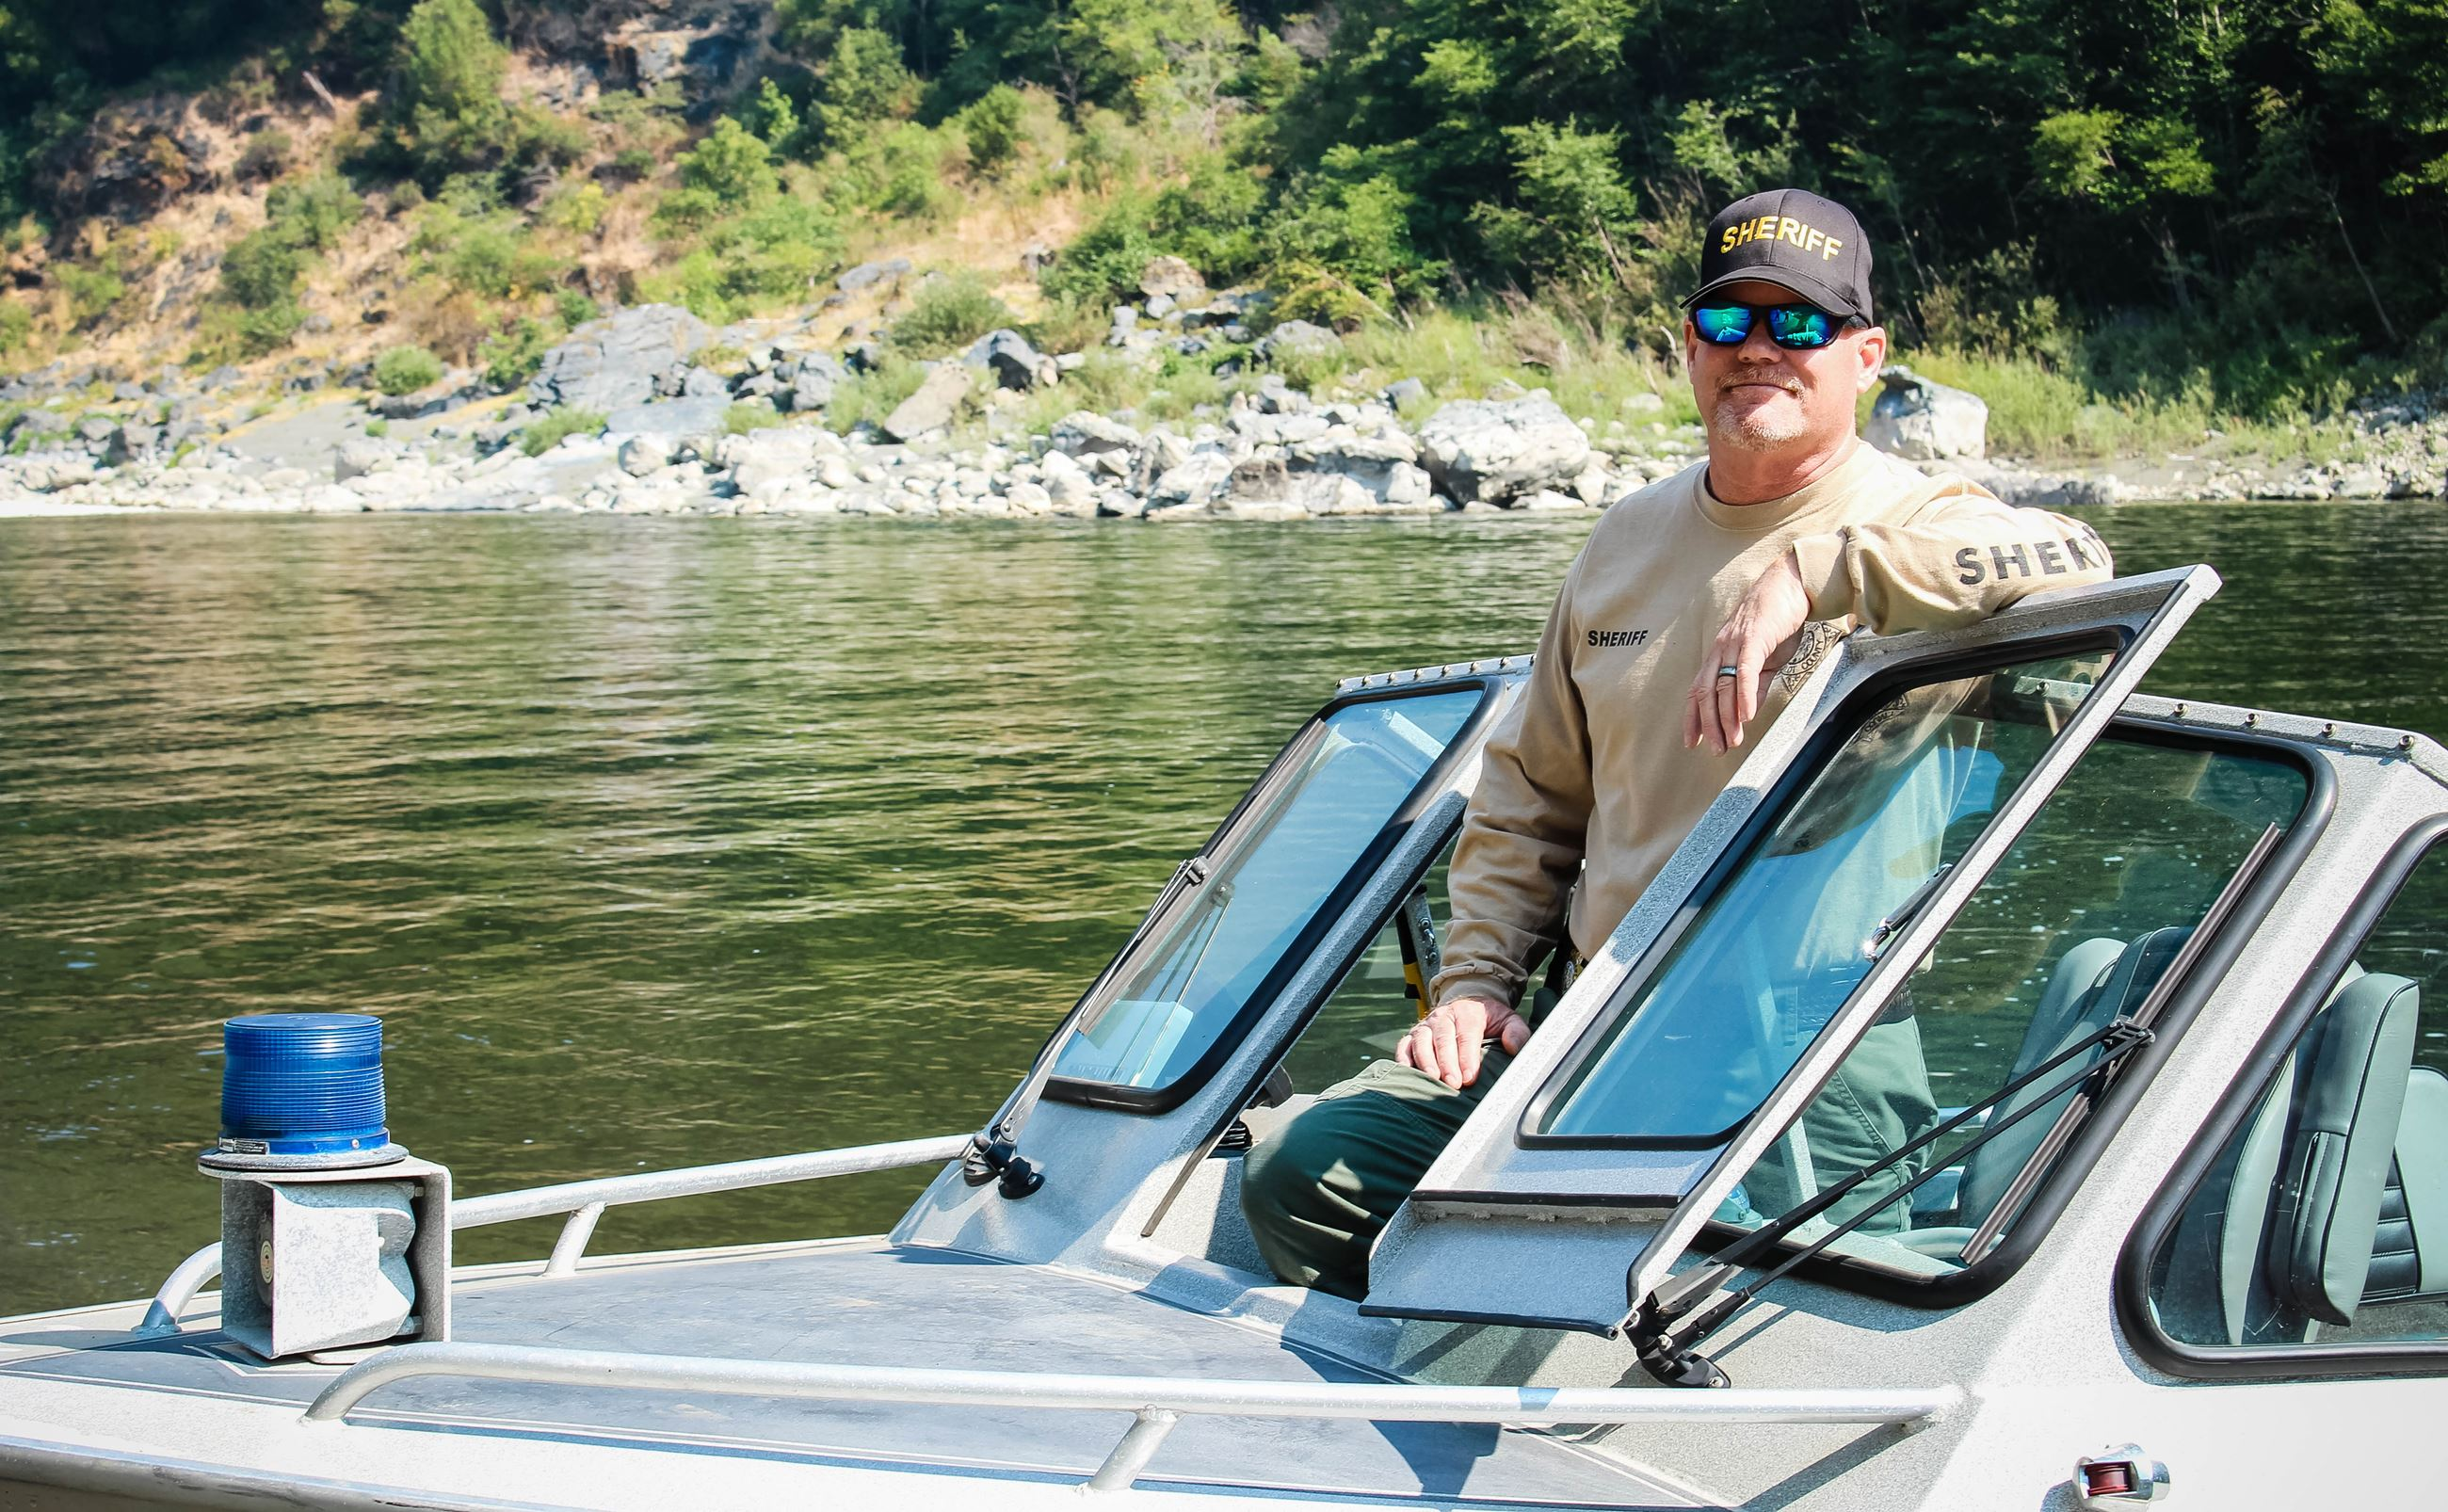 Sheriff's Lt. Mike Fridley stands on the Sheriff's Jet boat